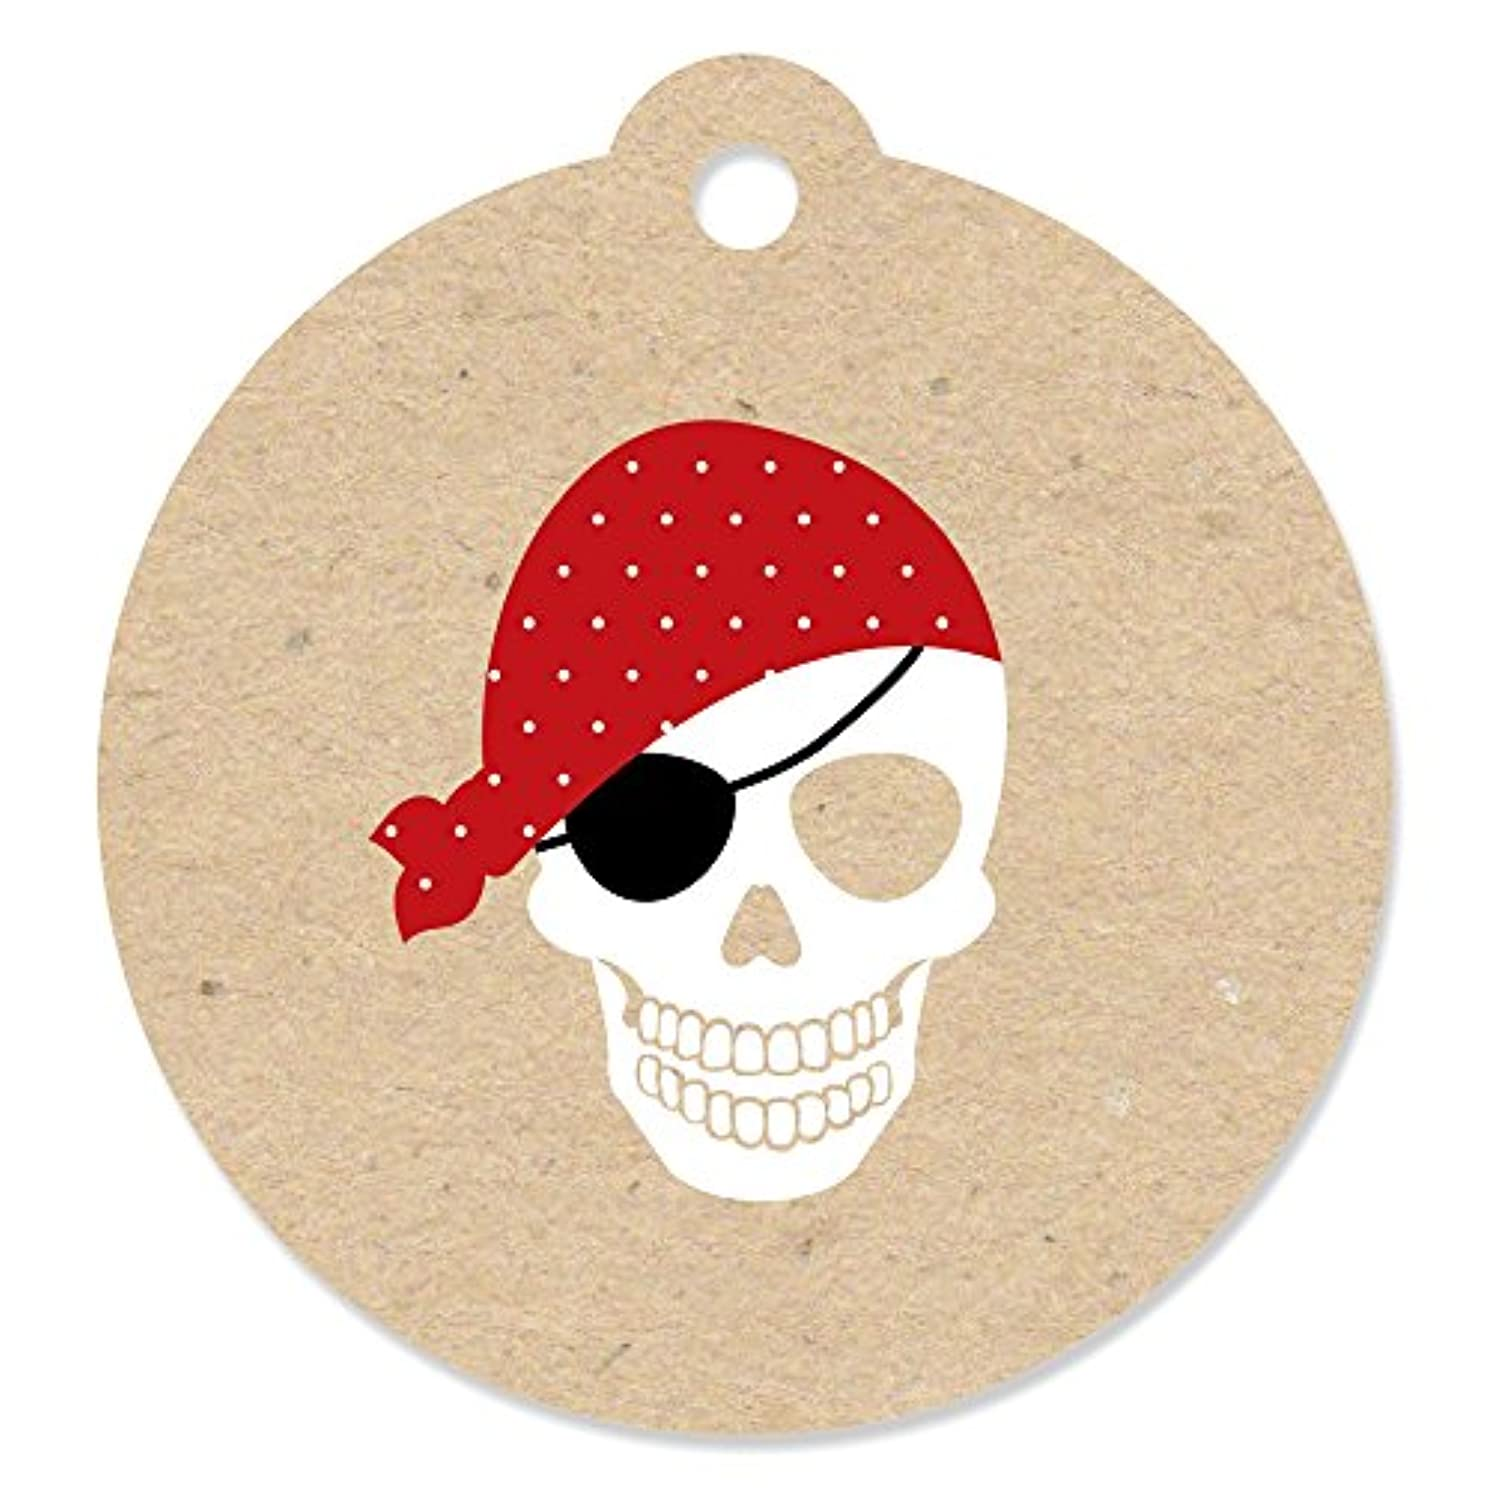 Beware of Pirates - Pirate Birthday Party Favor Gift Tags (Set of 20)